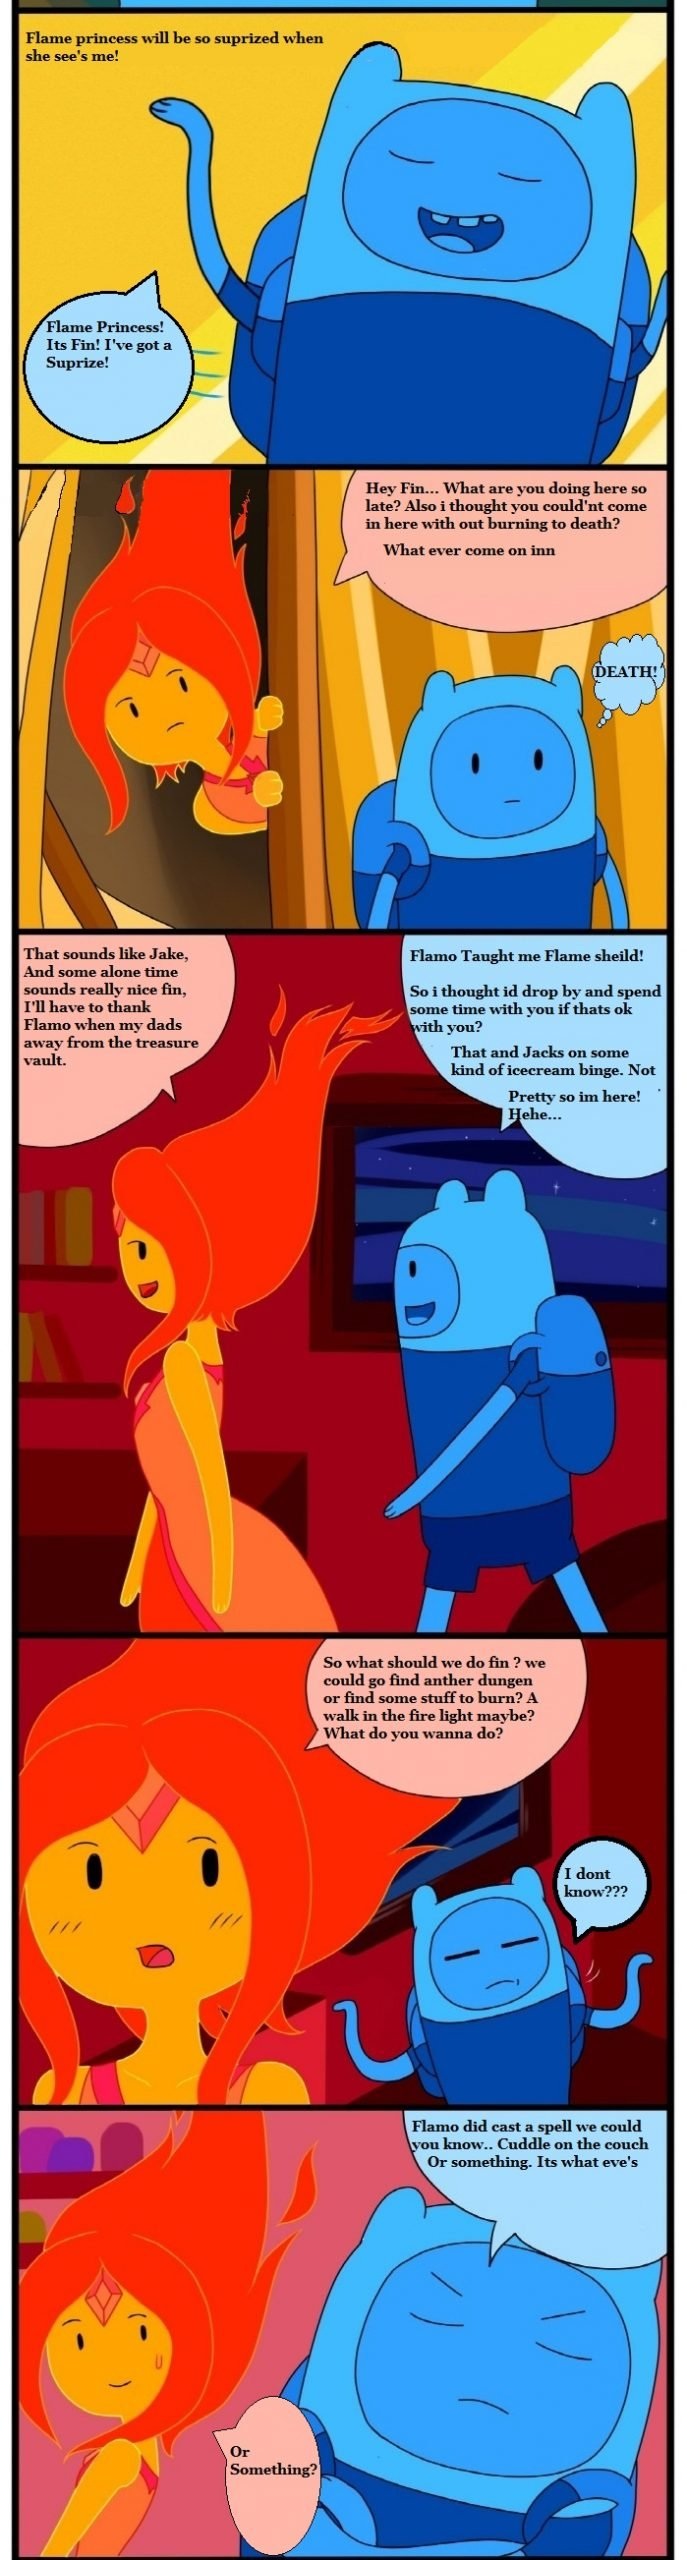 Adult Time 1 Adventure Time 02